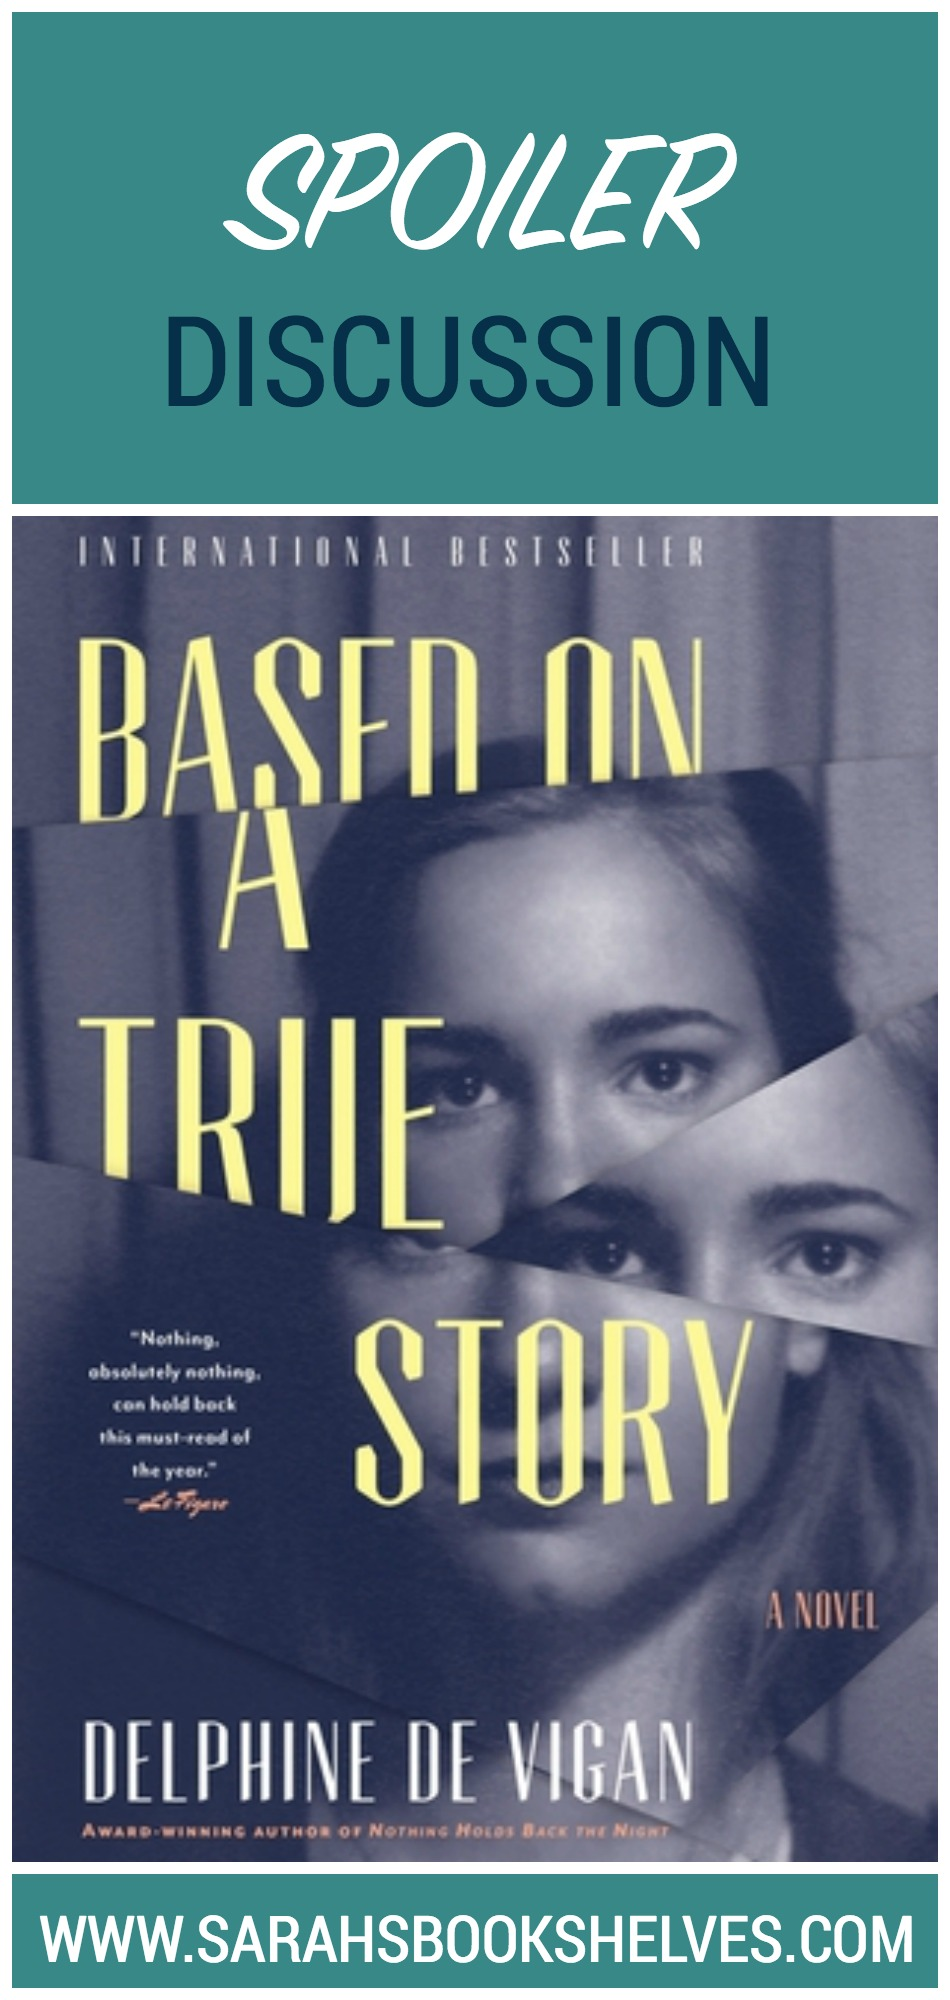 Based on a True Story by Delphine de Vigan Spoiler Discussion: Is the story real or fiction? Or a mix of both? This is a book you just HAVE to discuss!